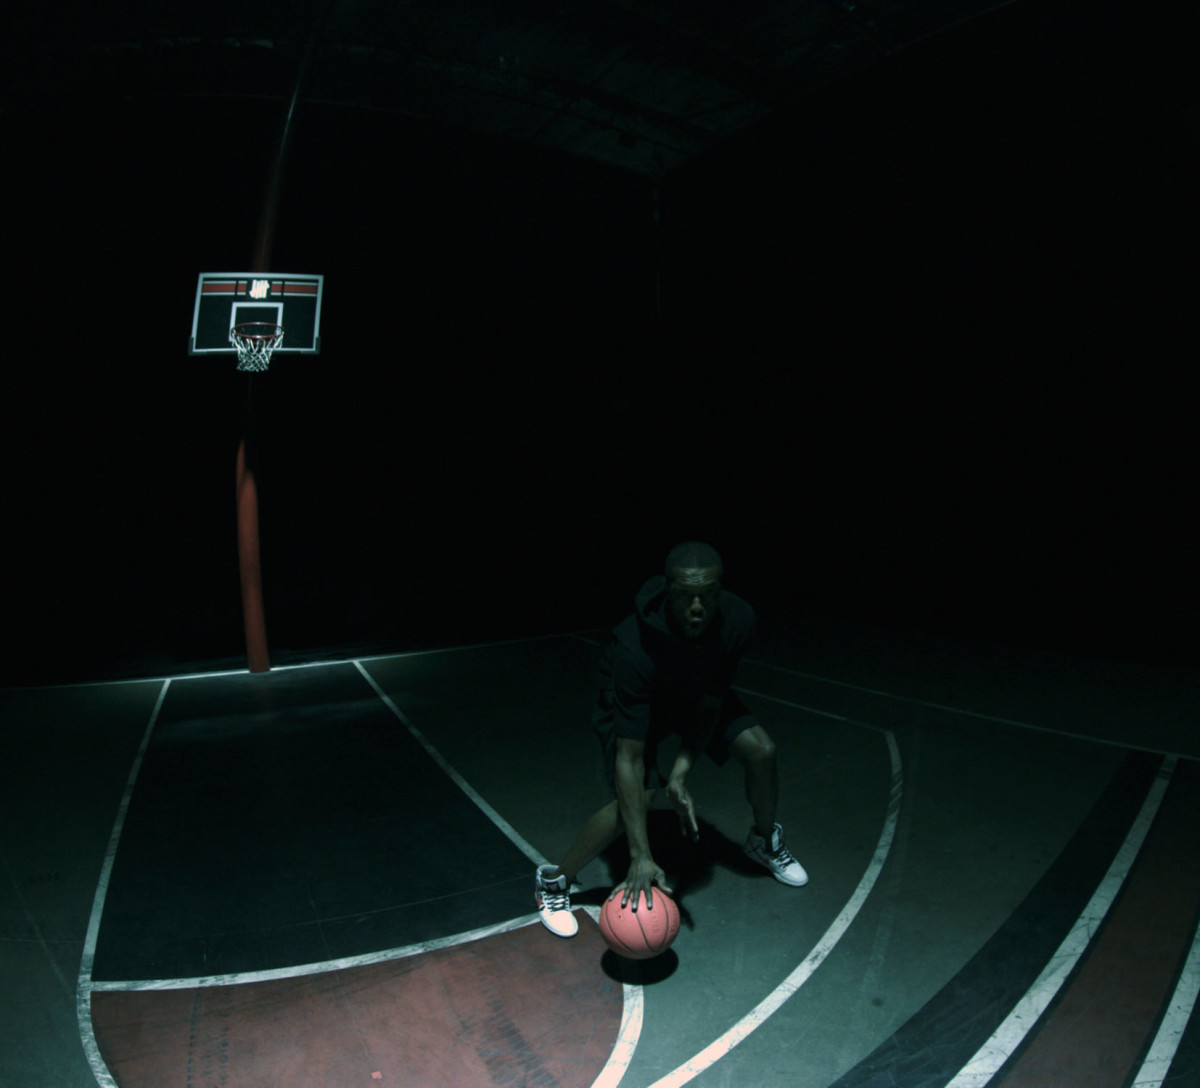 undefeated-courtvision-virtual-reality-experience-03.jpg